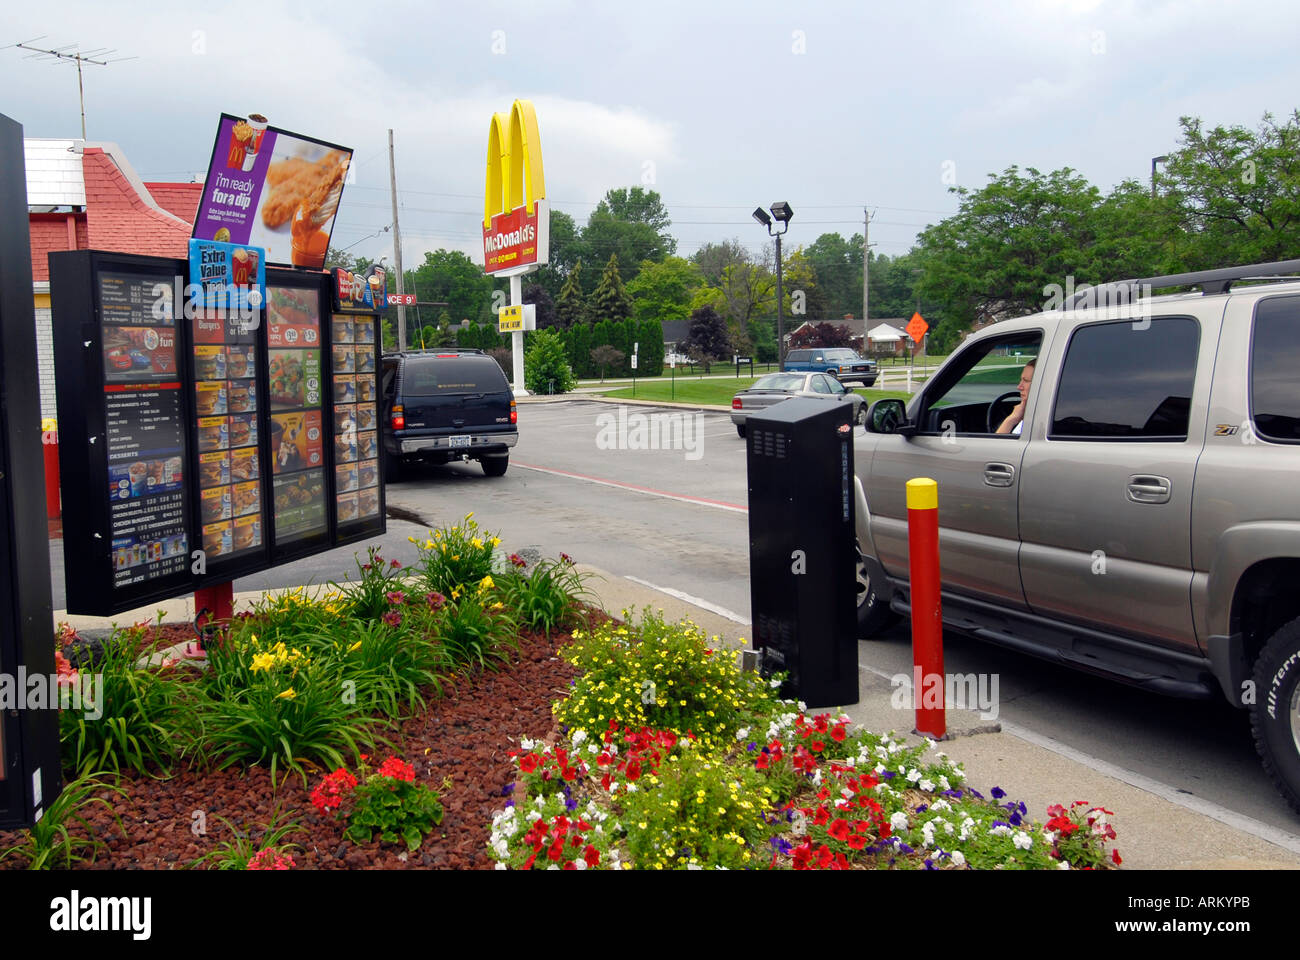 How to Order at a Restaurant DriveThrough